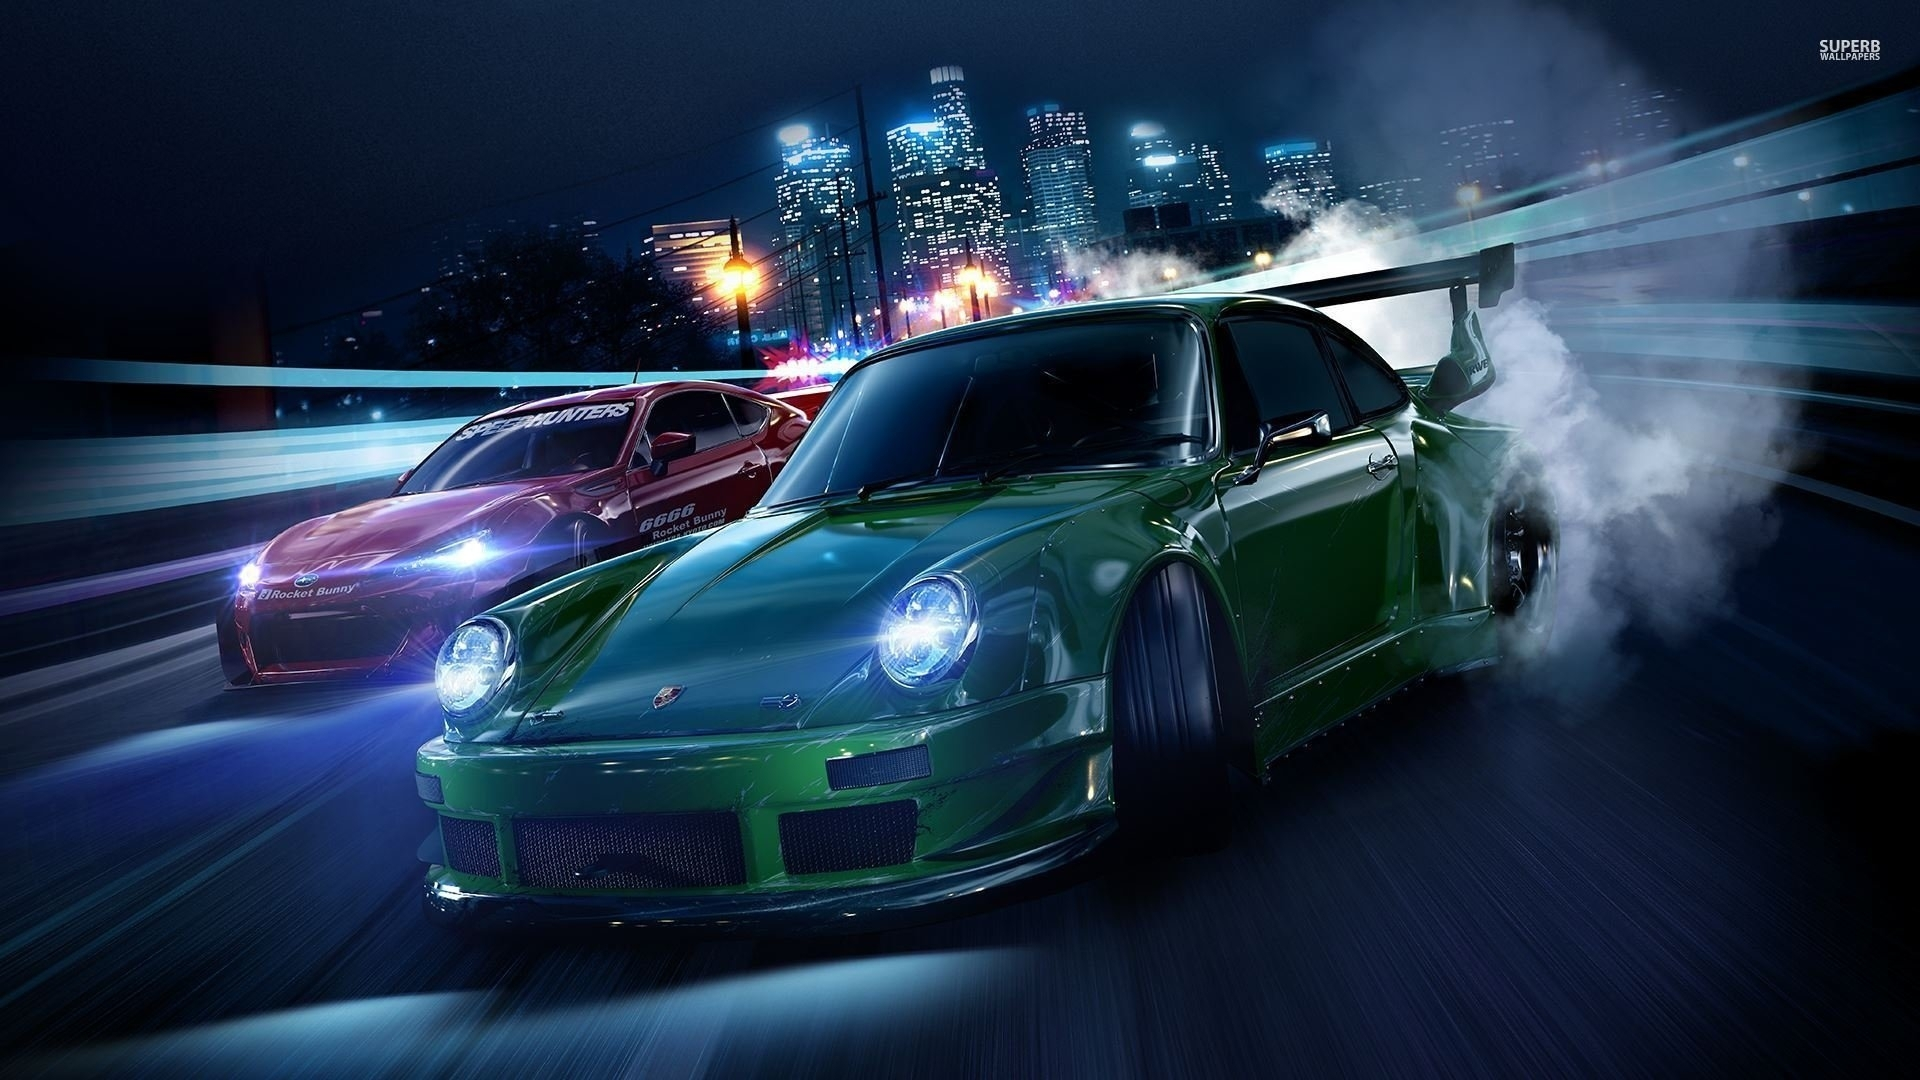 need for speed full hd fond d'écran and arrière-plan | 1920x1080